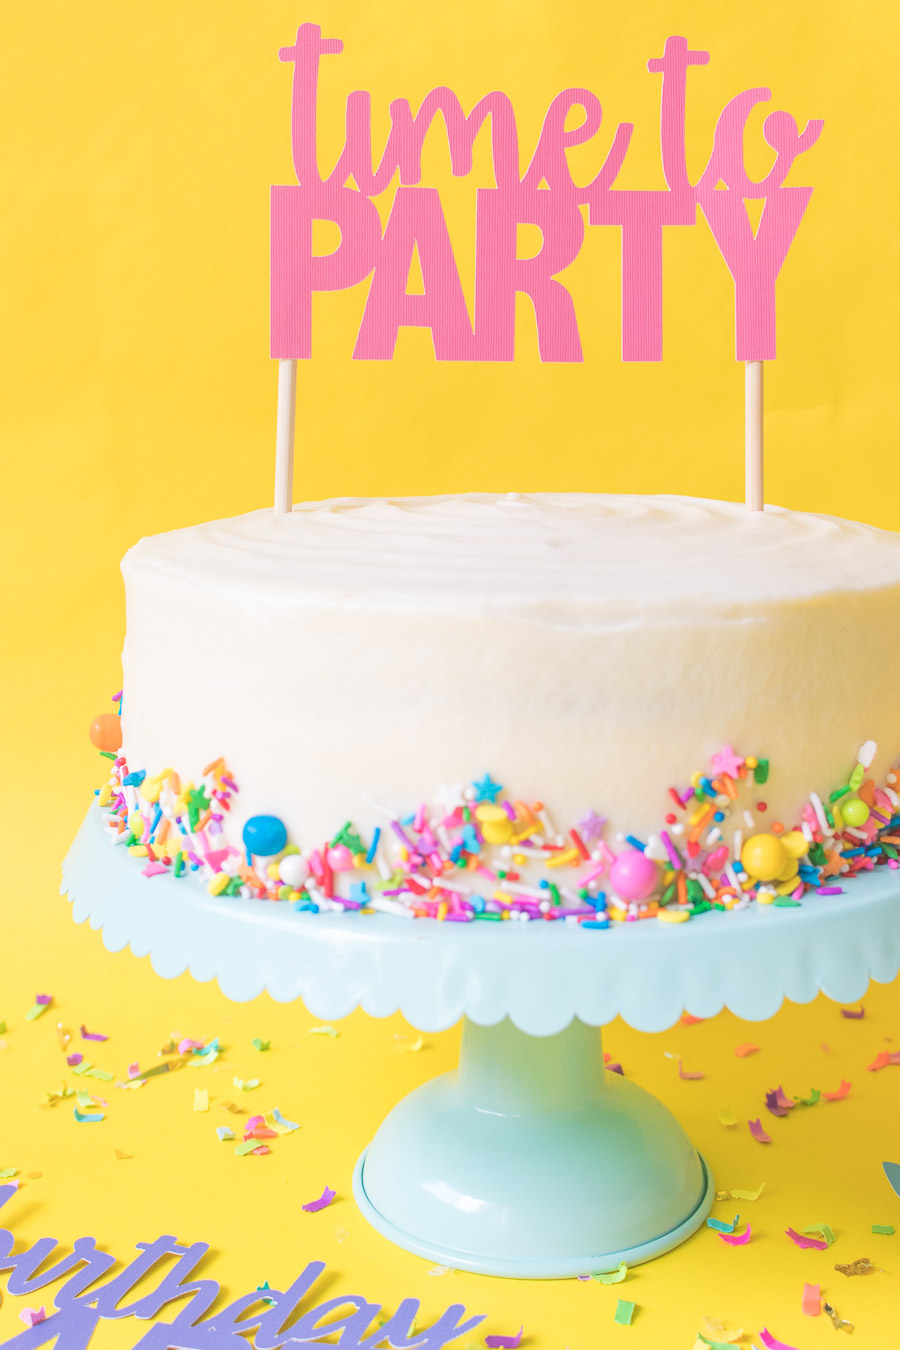 image about Birthday Cake Printable known as Printable Cake Toppers for Birthdays (+ Totally free SVG Templates!)